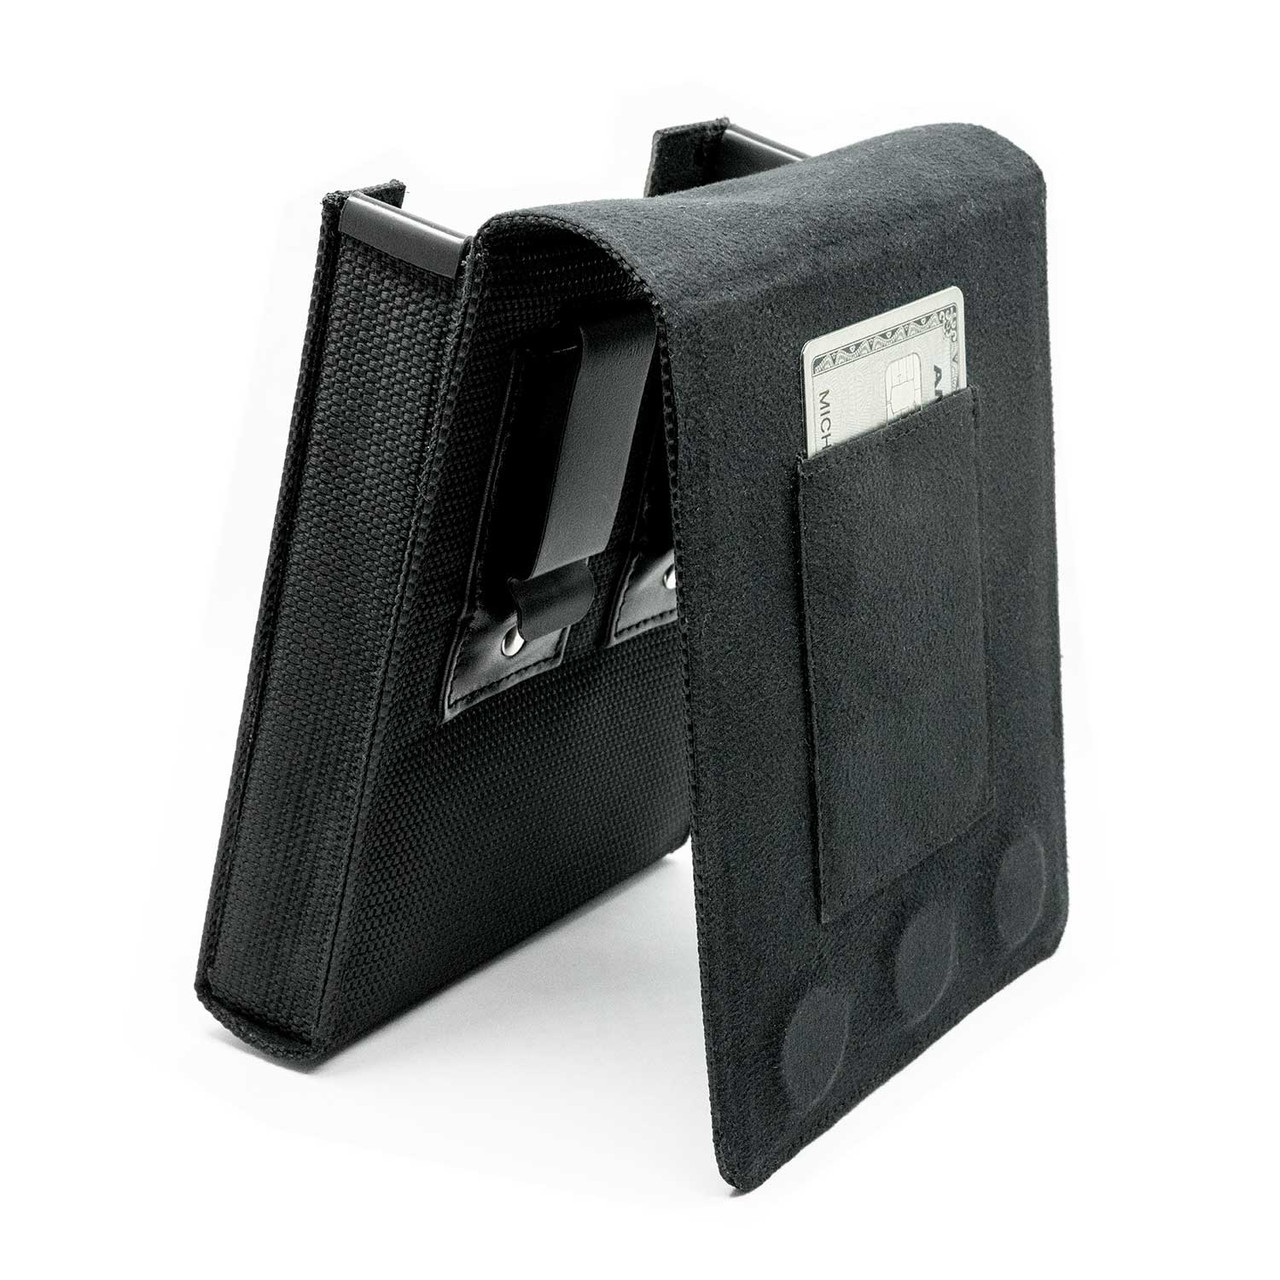 SCCY CPX-1 Holster